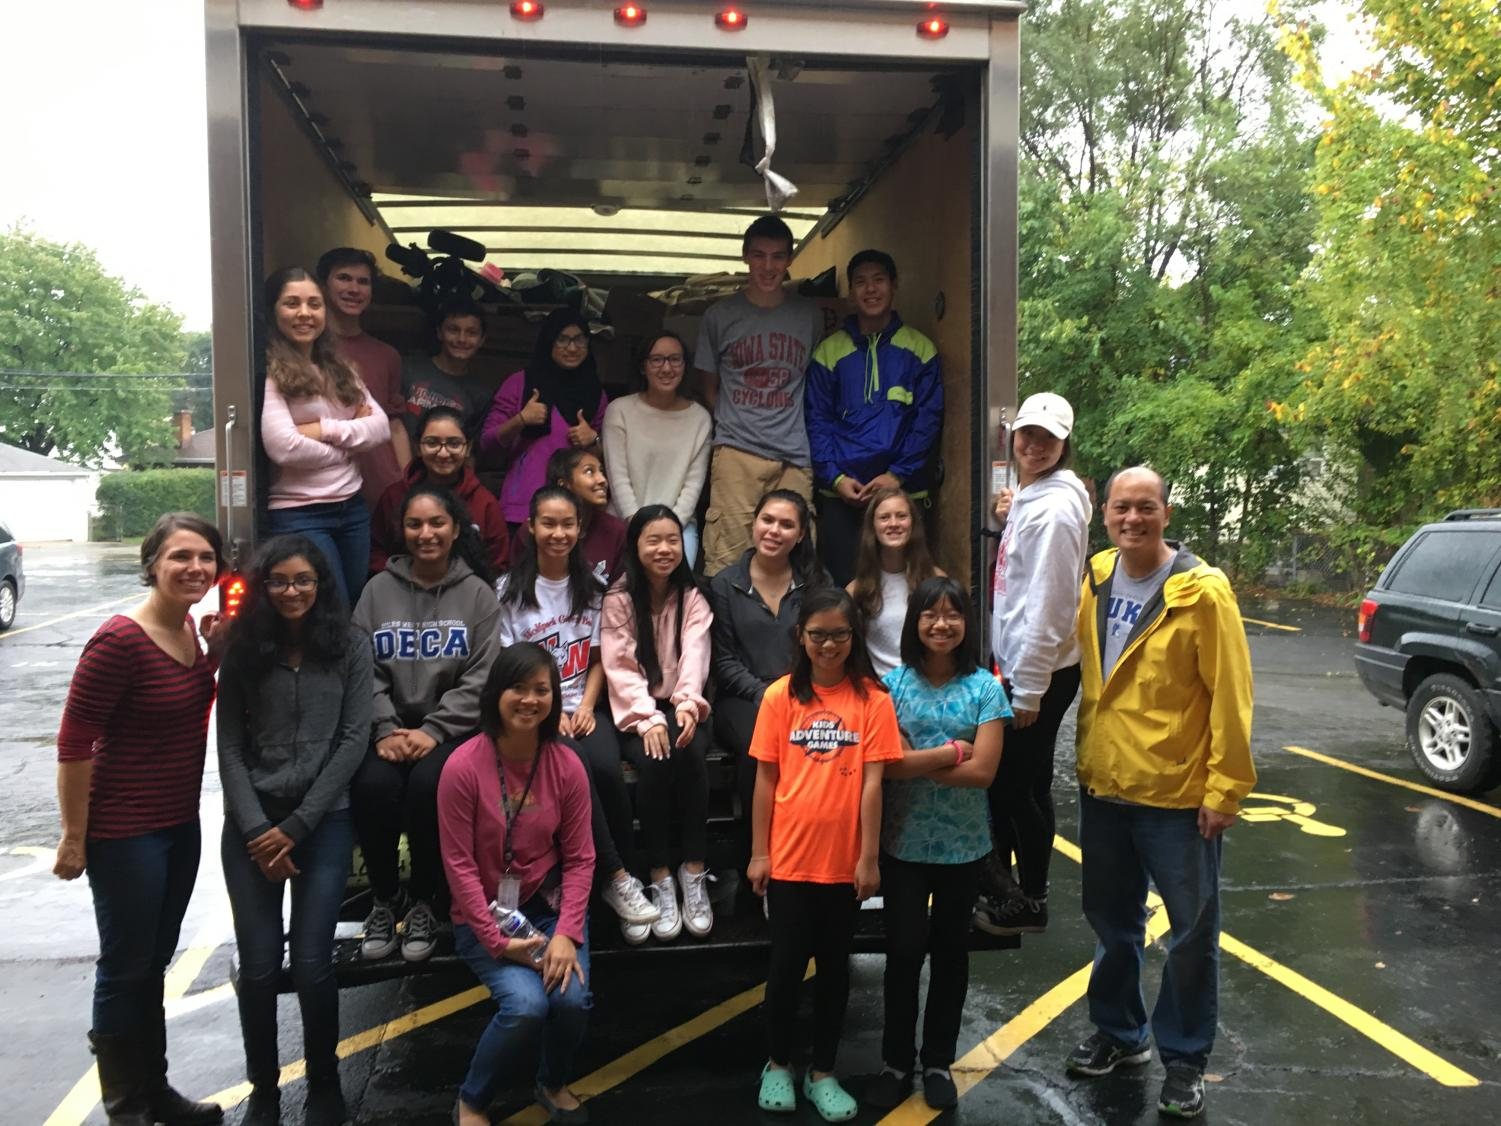 Members of NHS volunteering at the Niles Township Clothing Closet on October 14, 2017.